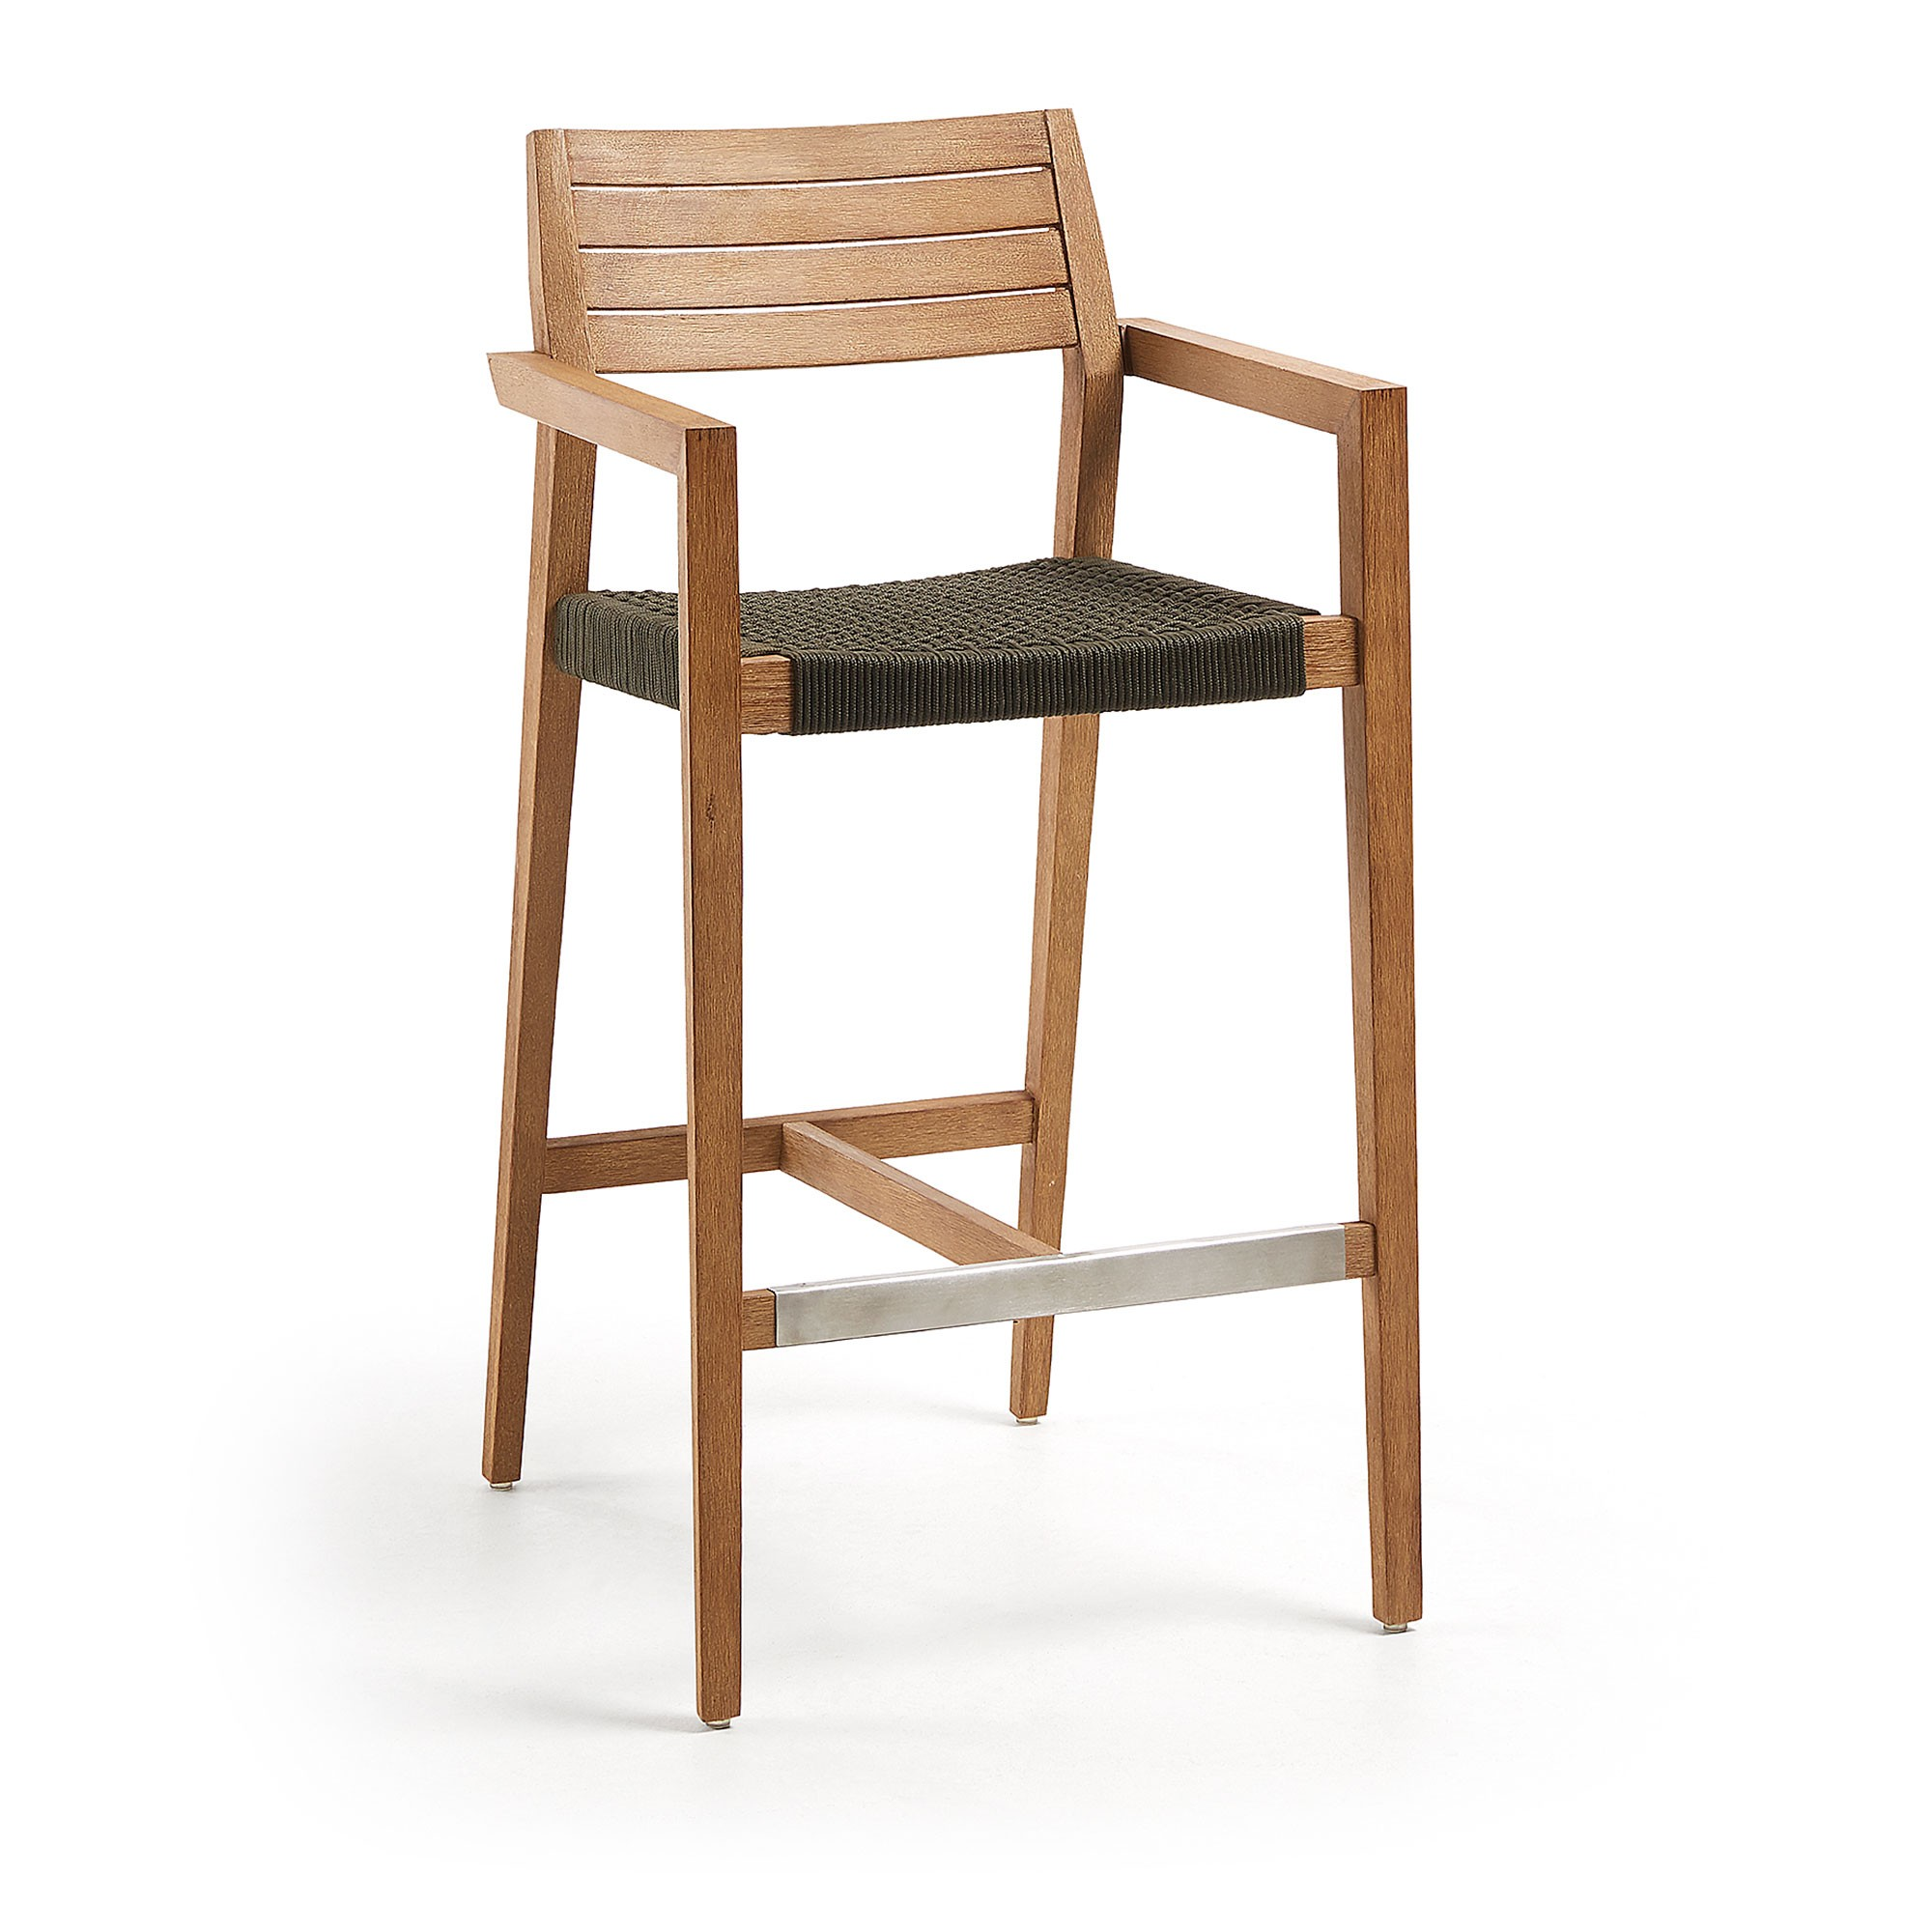 Winslow Eucalyptus Timber Indoor / Outdoor Bar Stool with Rope Seat, Natural / Charcoal